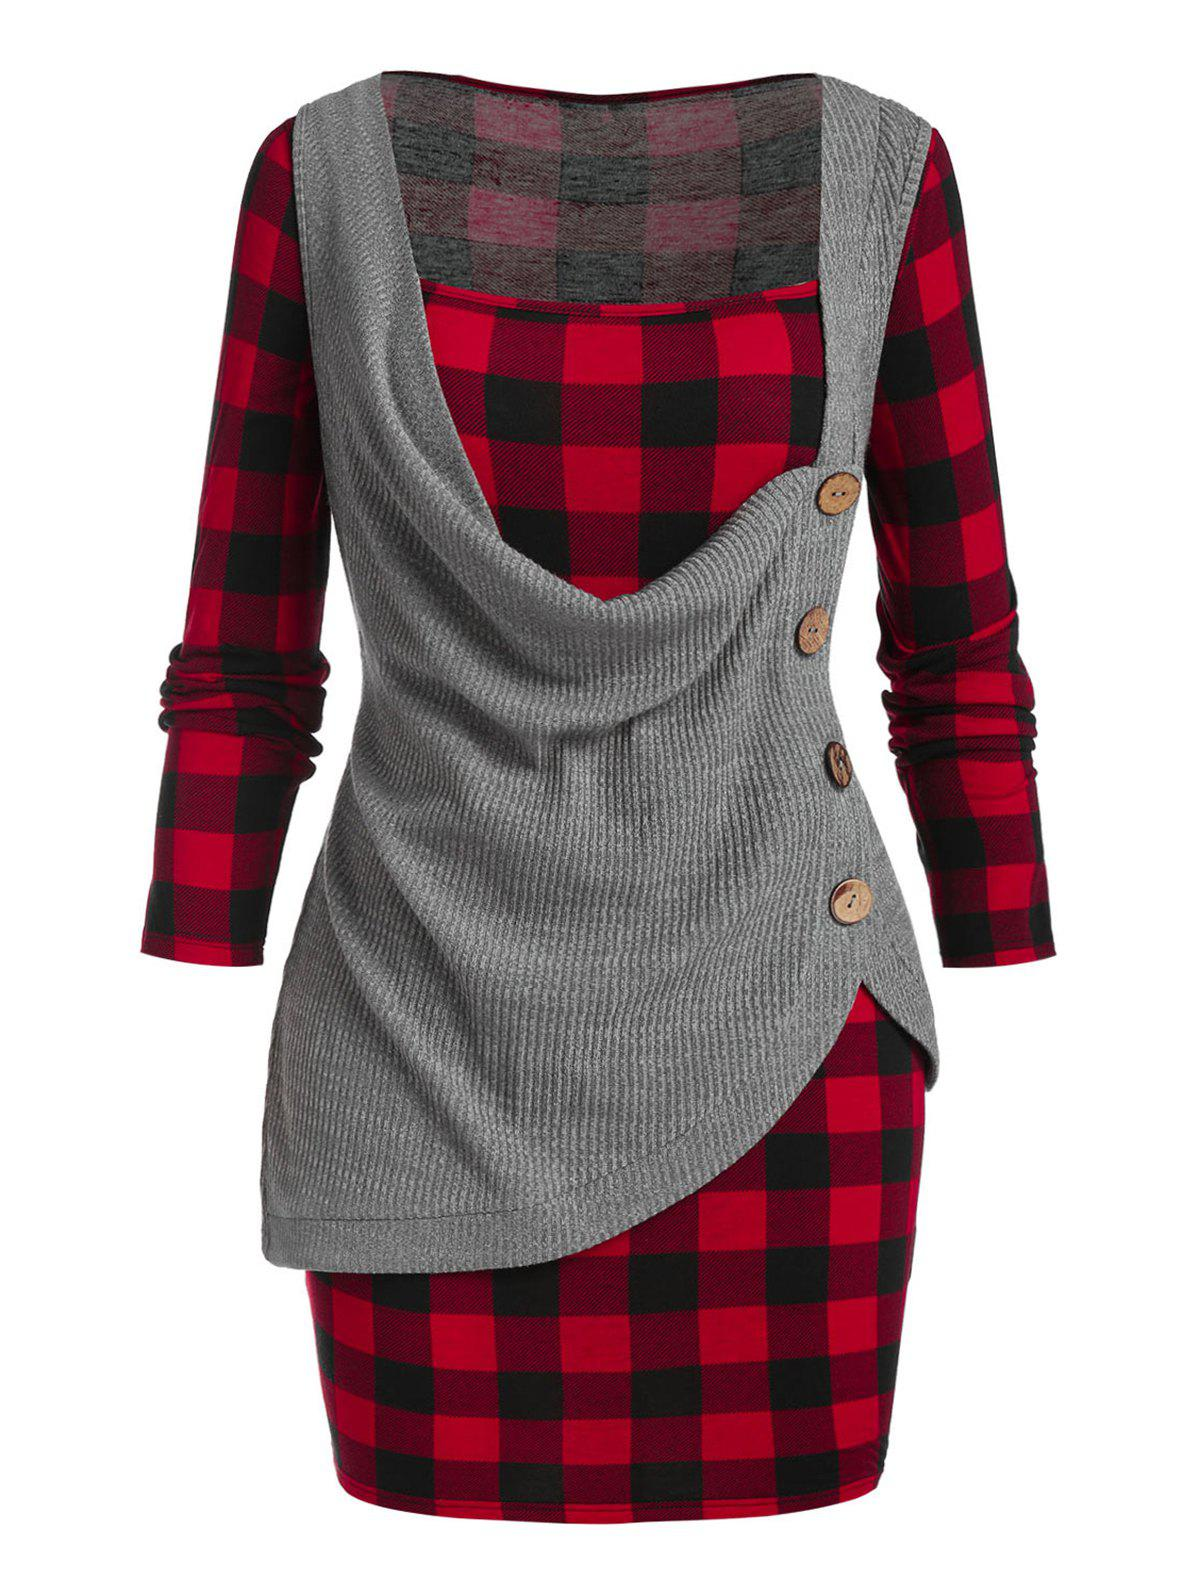 Plus Size Cowl Front Knitwear and Plaid Dress Set - RED WINE 3X